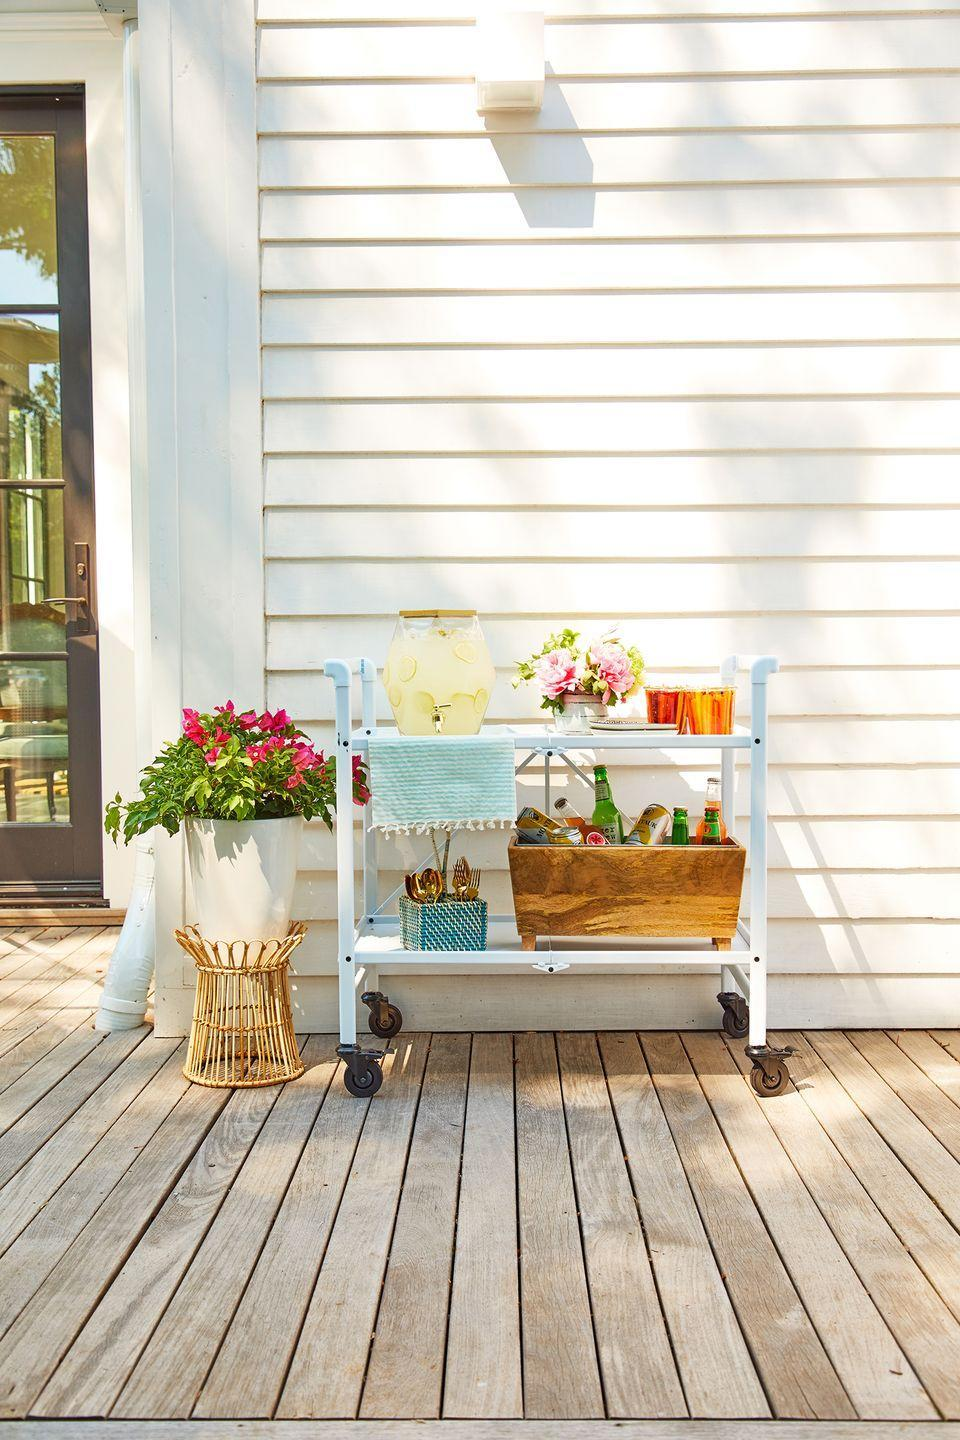 <p>Use your bar cart to enhance your outdoor oasis and bring charm to your summer gatherings. Just display a selection of your favorite summer beverages, brighten it up with fresh flowers, and you're all set. </p>